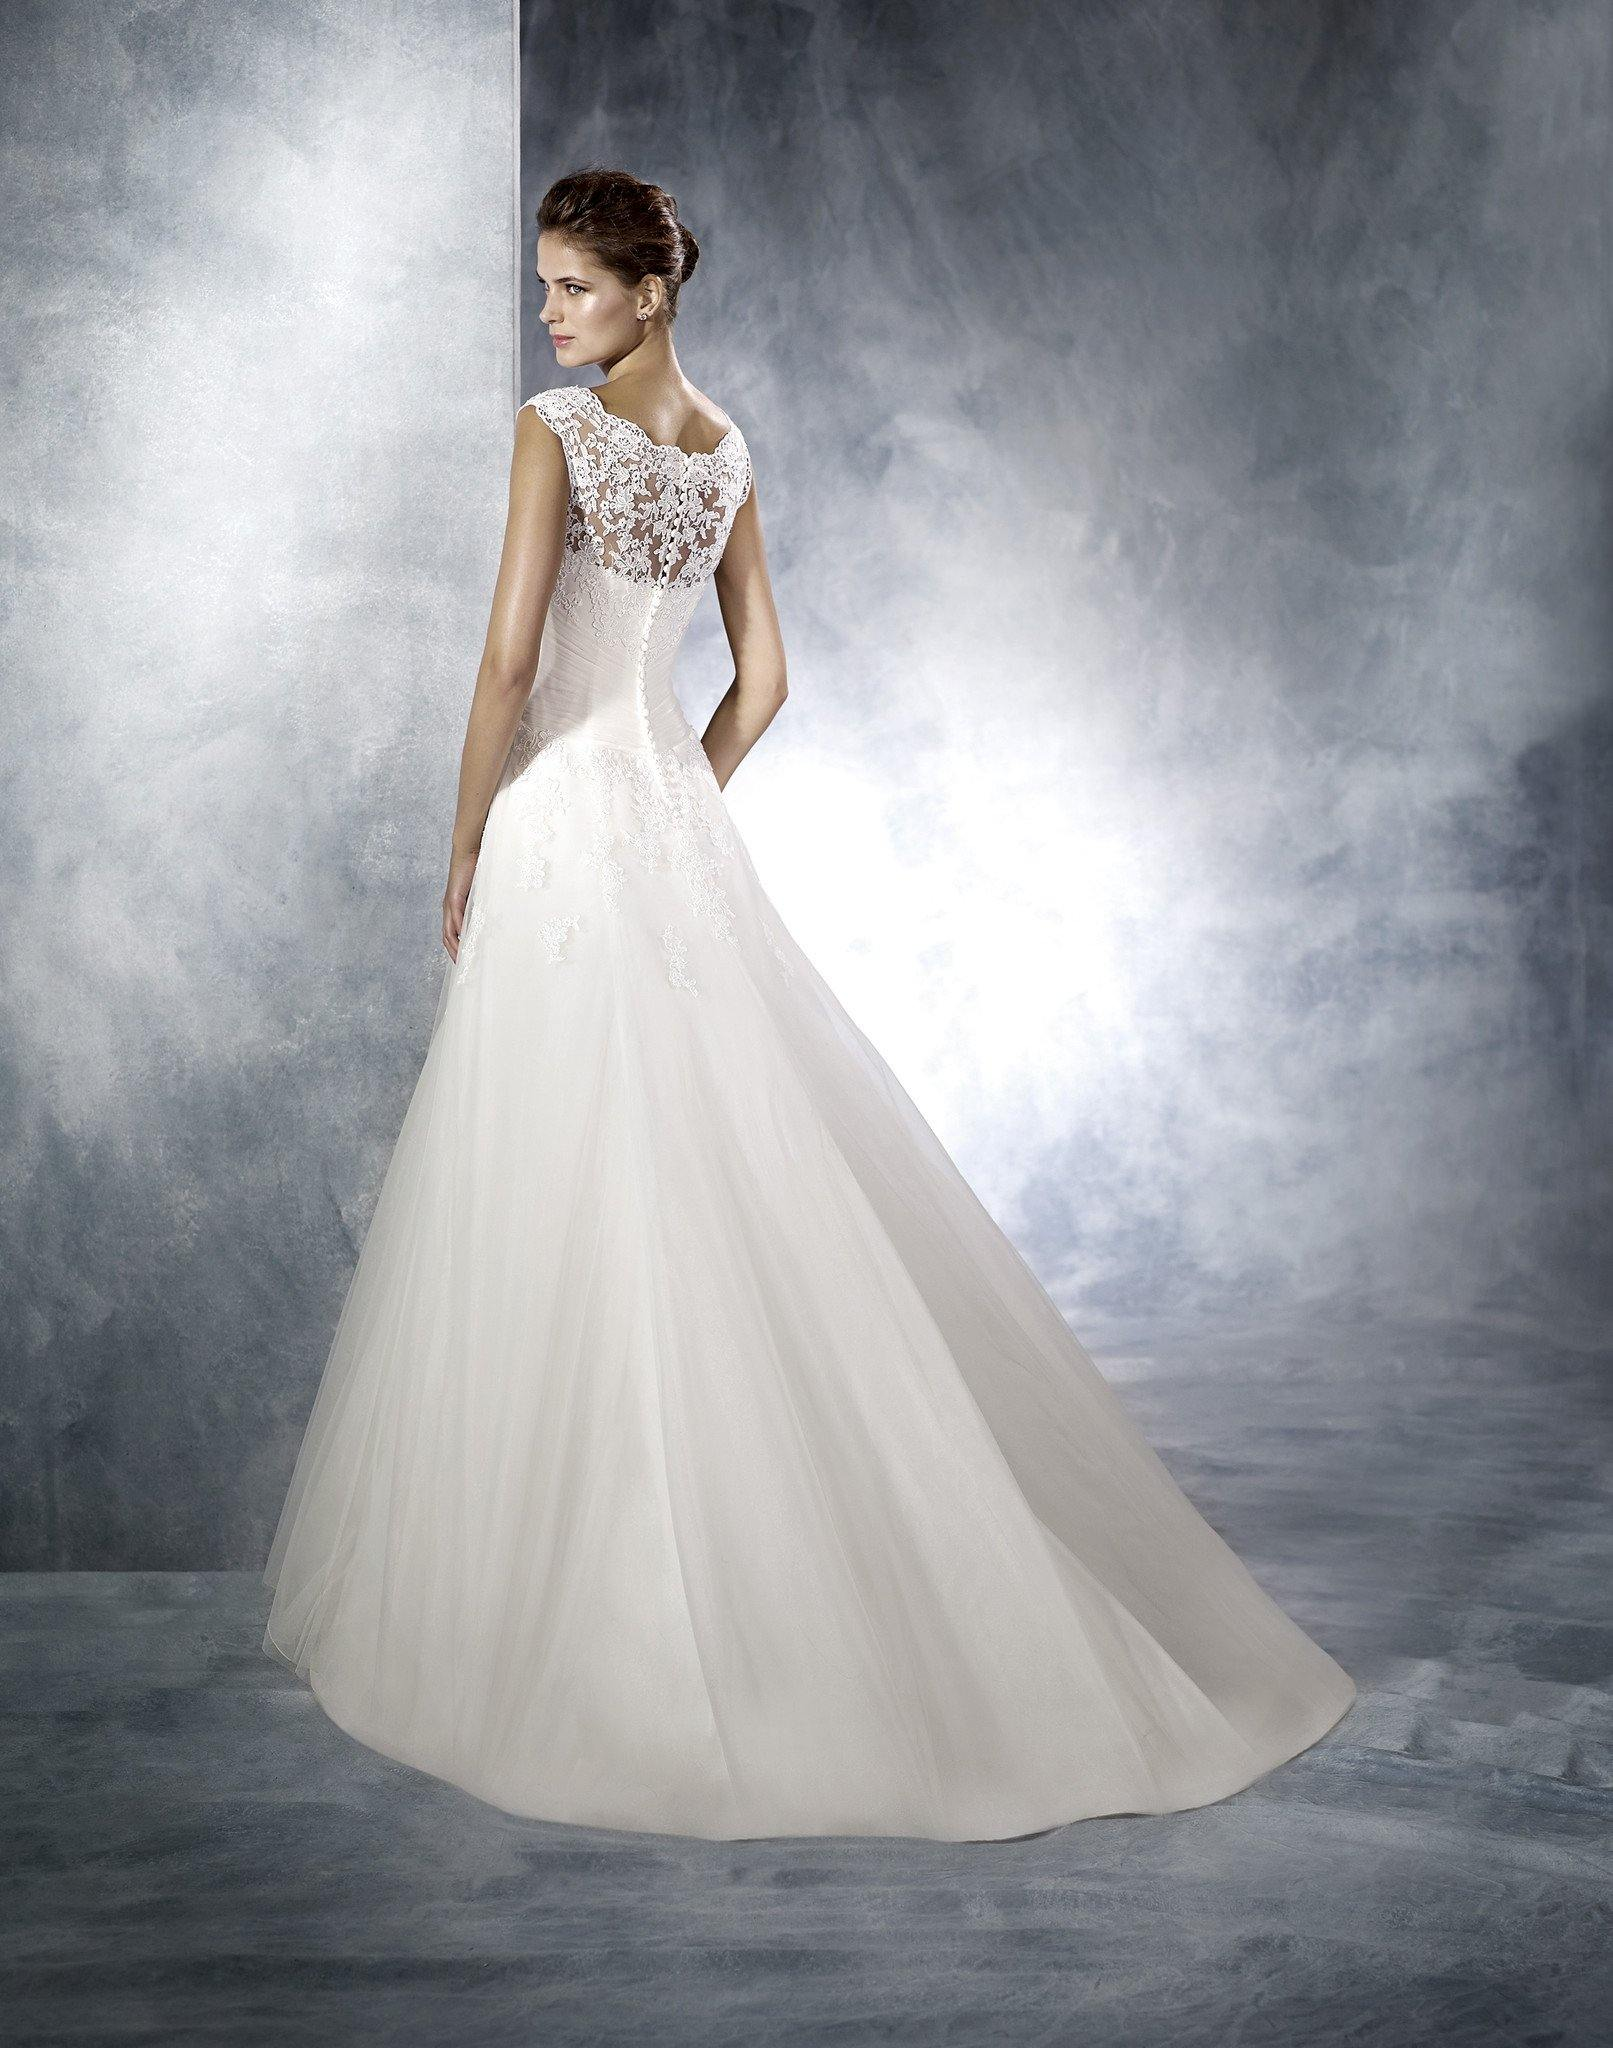 Pronovia White One -UK12 - Elliott Chambers    - Bridal -  Debs Dresses -  Communion dresses